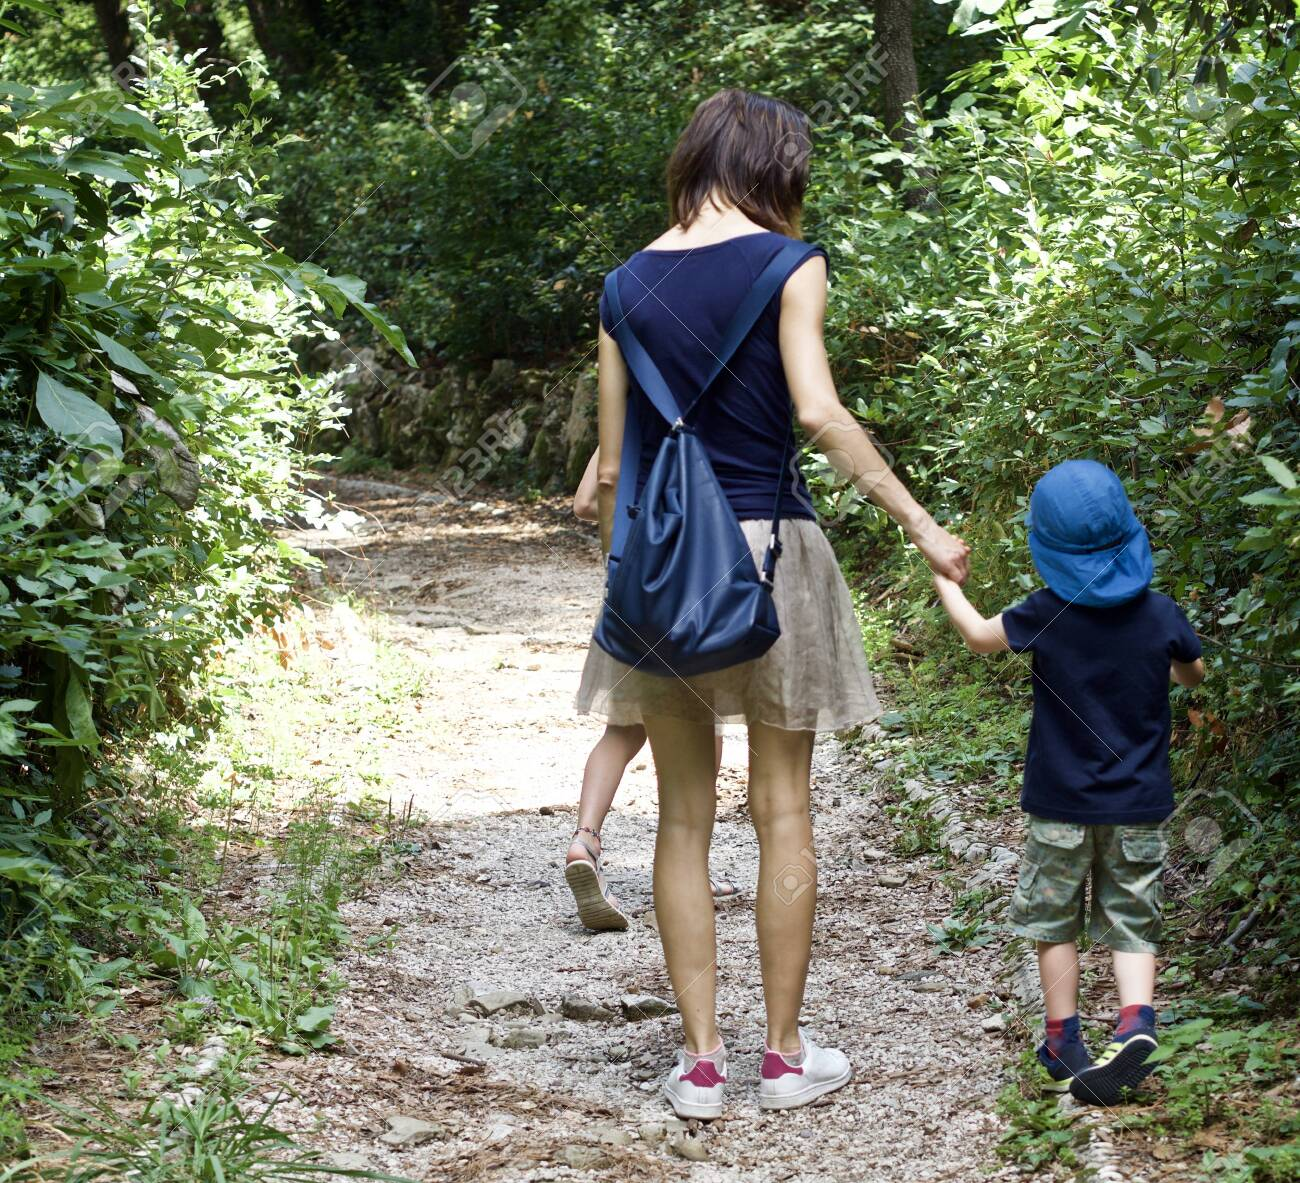 a happy mother is walking with her kids through a forest - 134791315